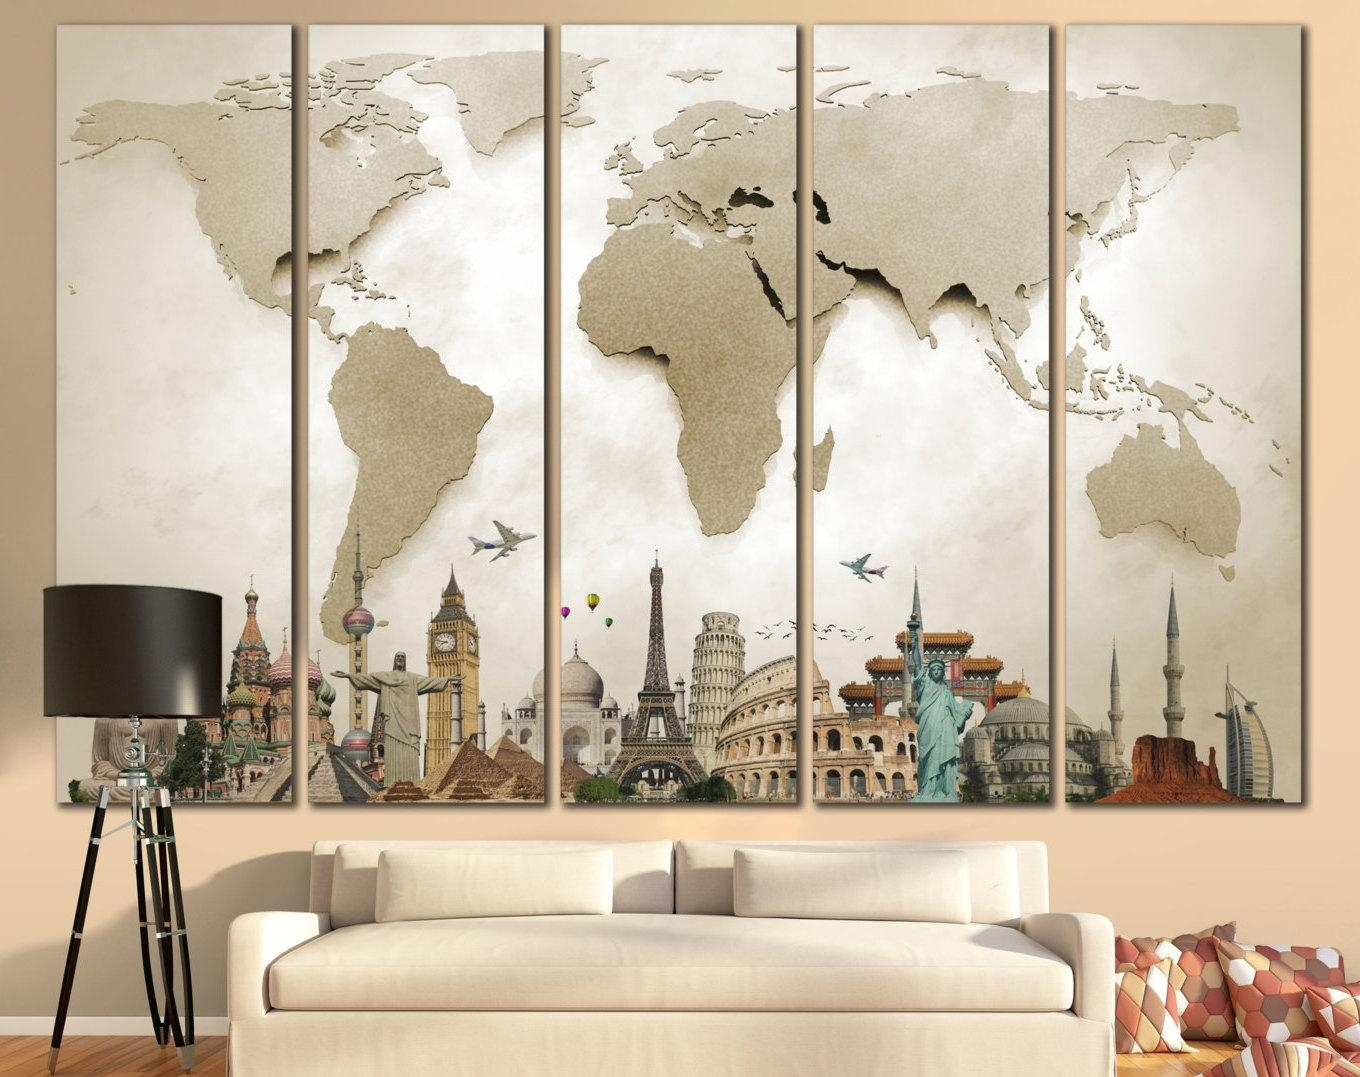 ▻ Amiable Figure Cheap Decorating Ideas For Living Room Walls Regarding Big Cheap Wall Art (Image 1 of 20)